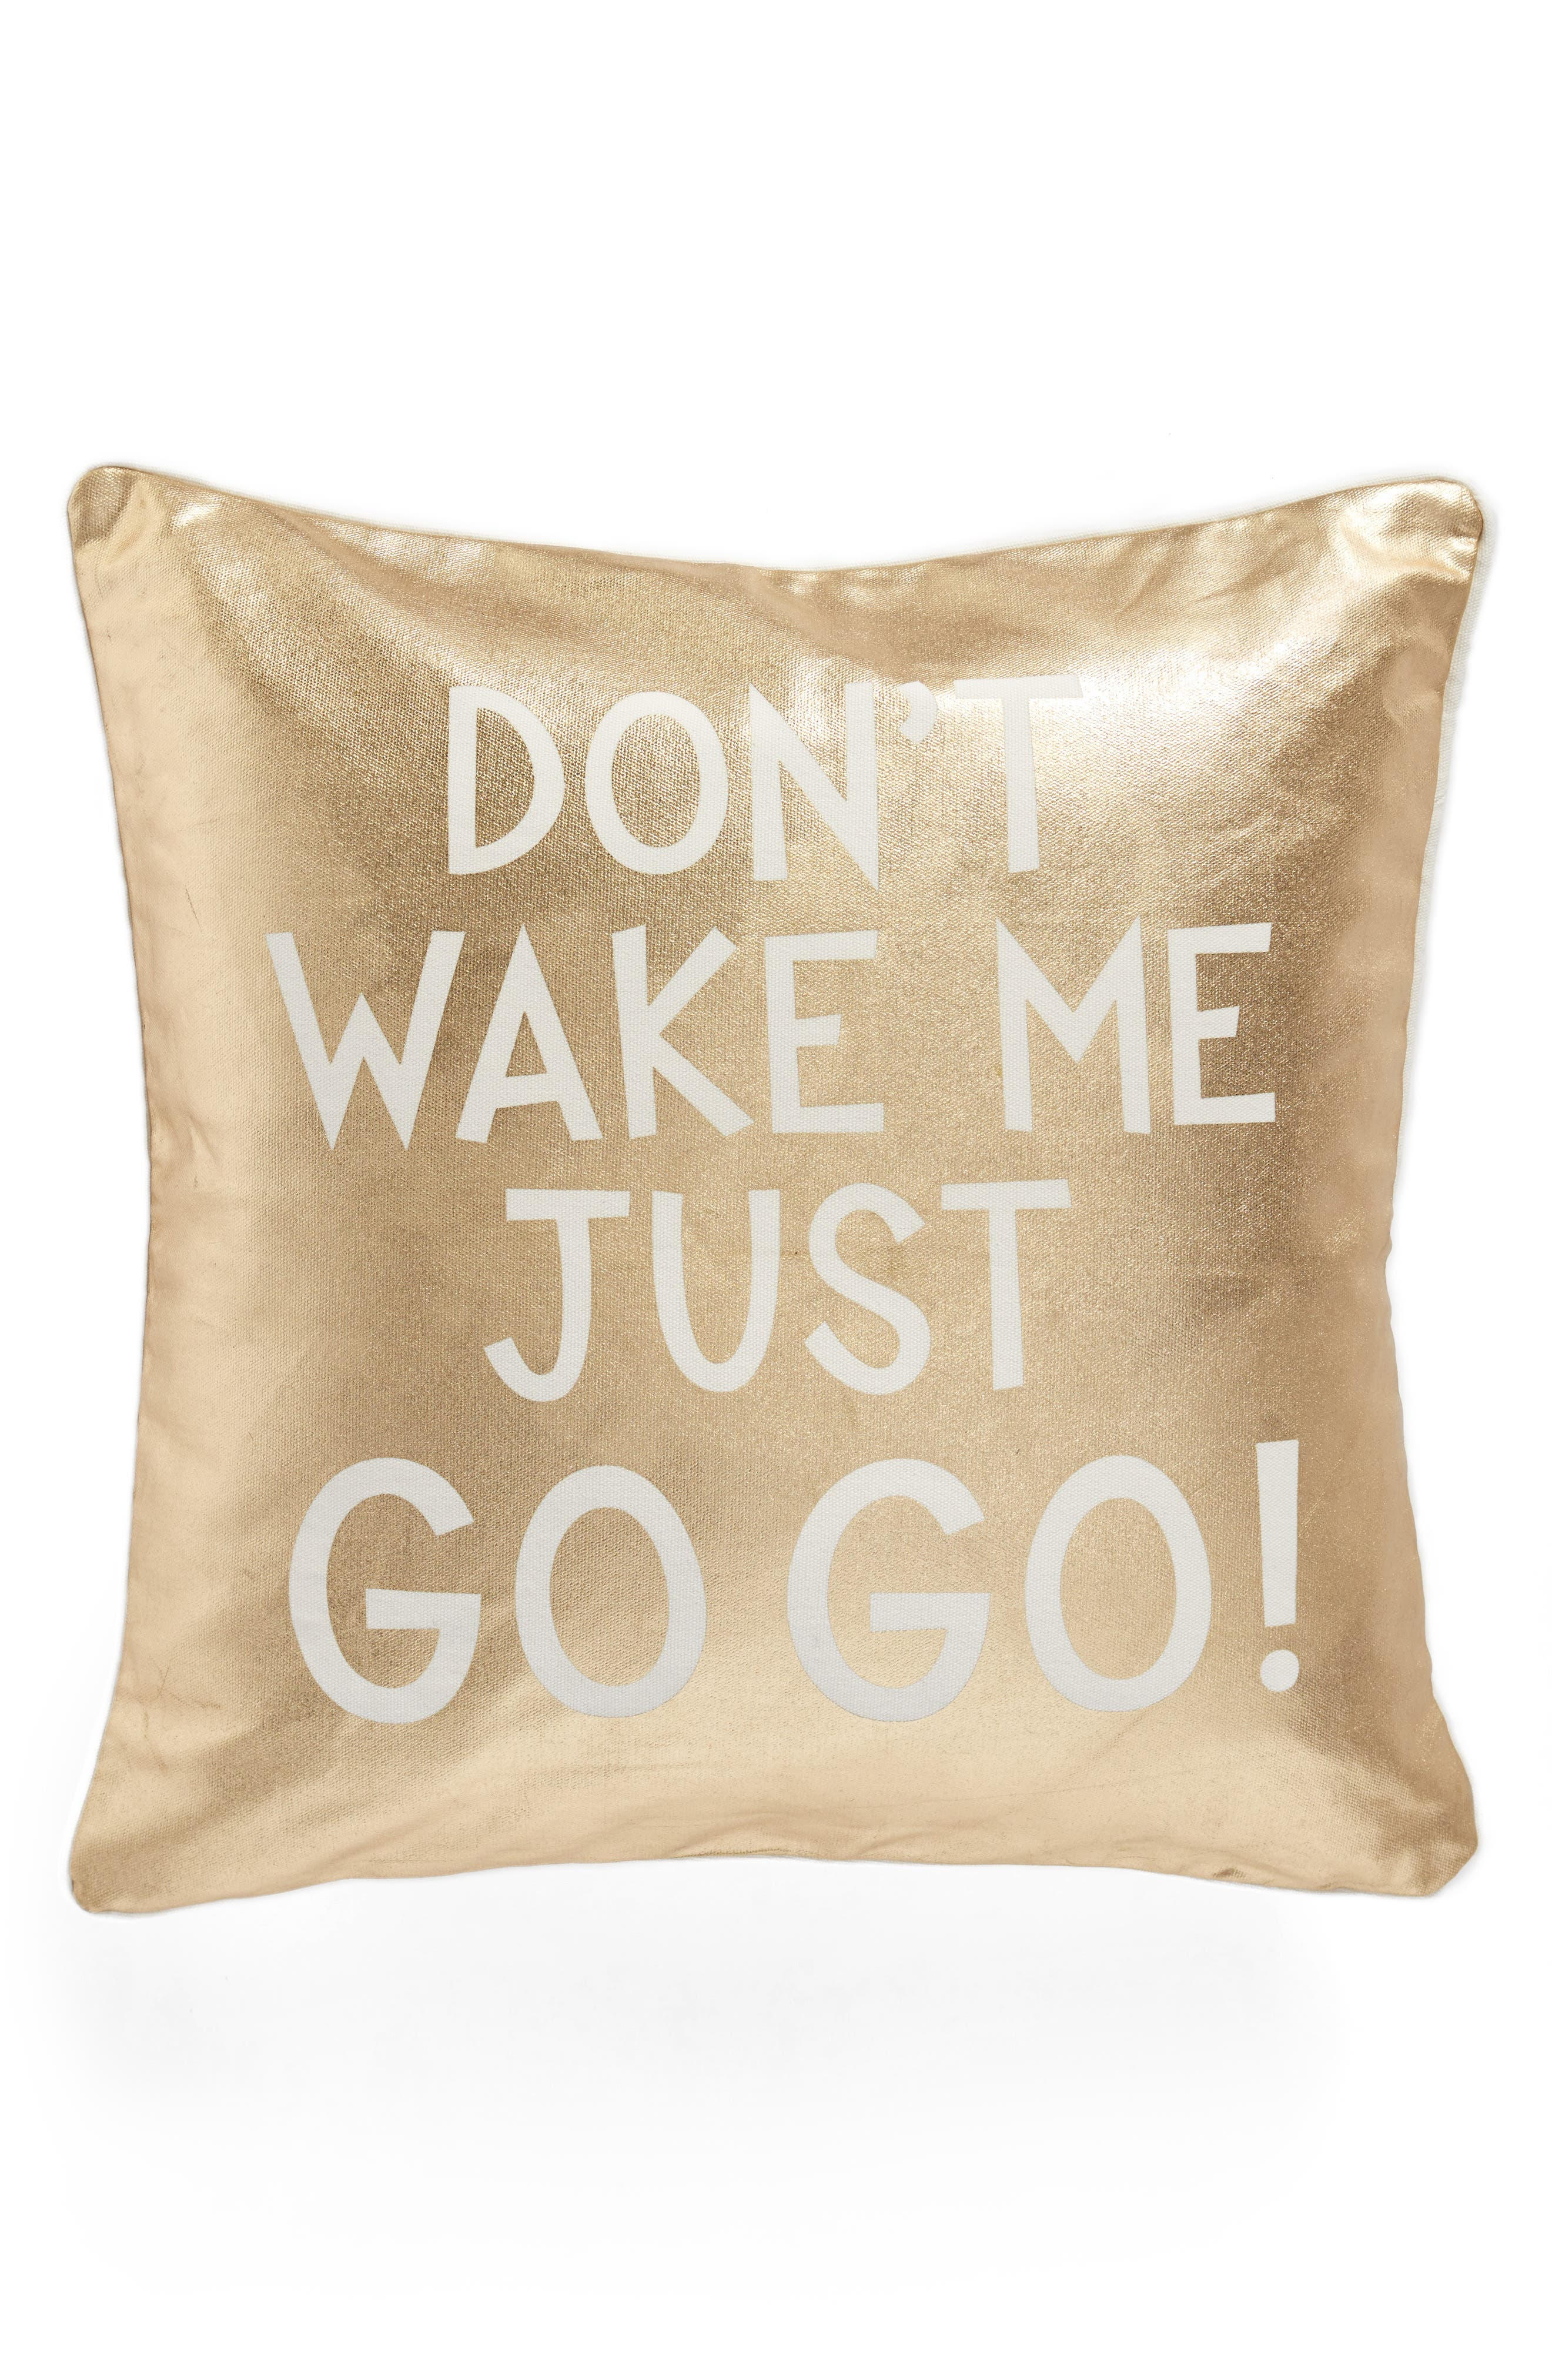 Don't Wake Me Just Go Go! Accent Pillow,                             Main thumbnail 1, color,                             Gold